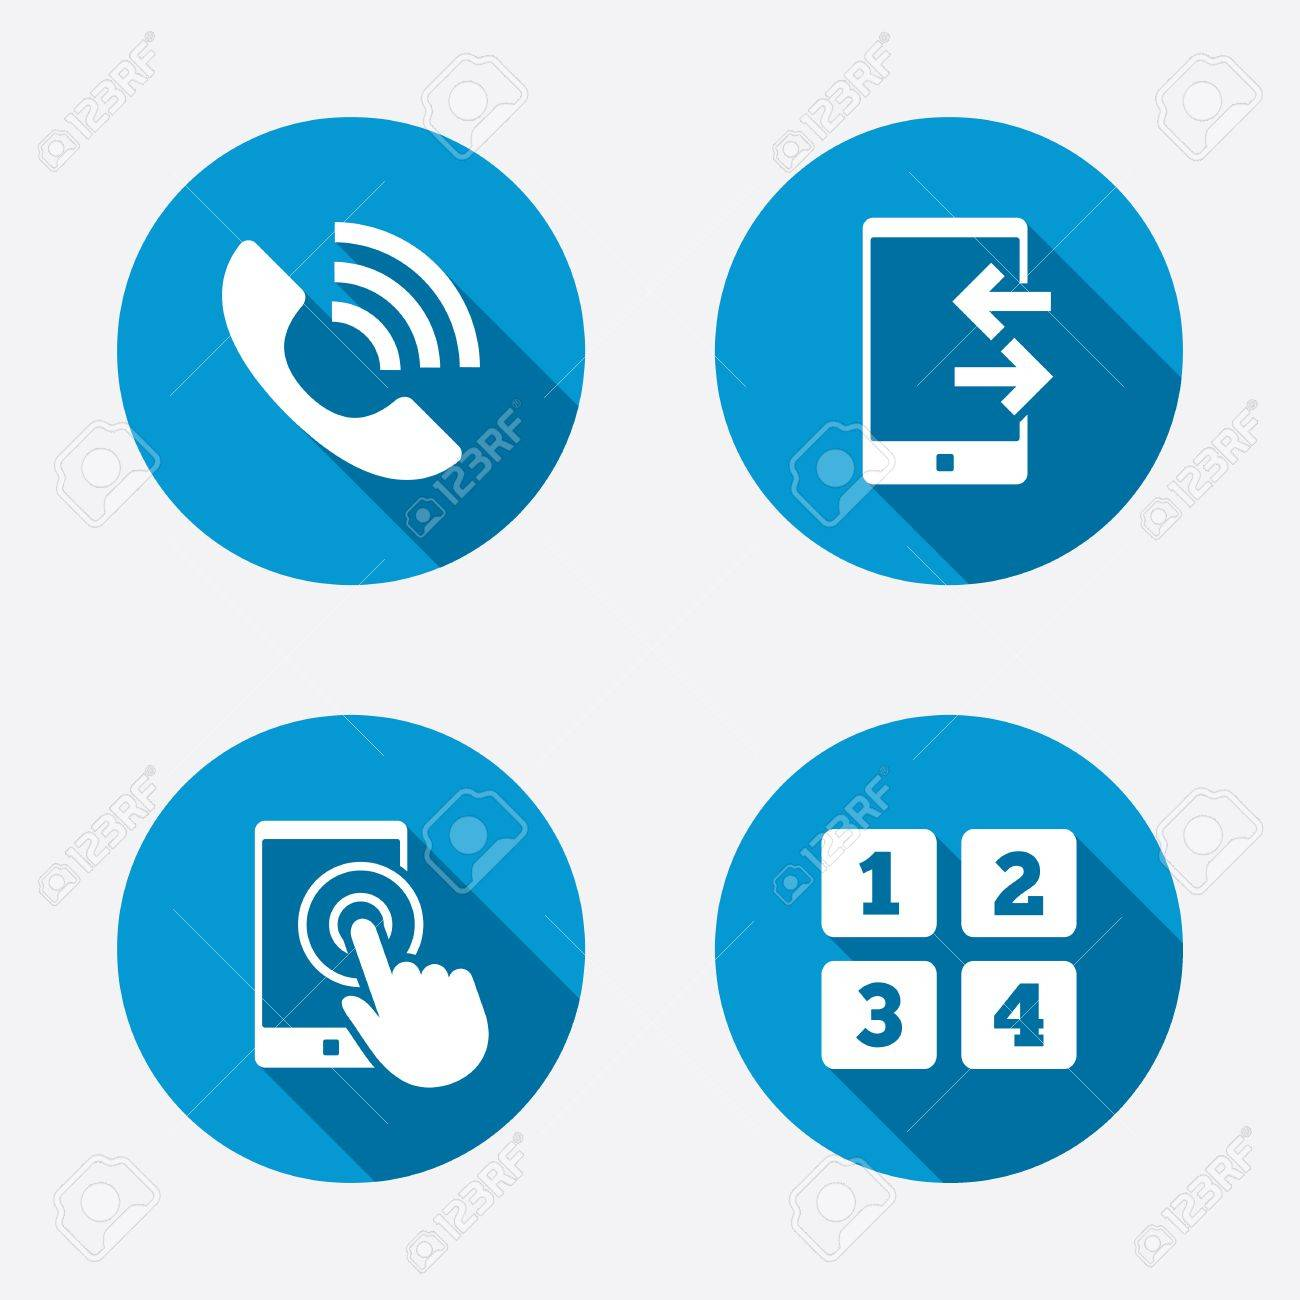 Phone Icons Touch Screen Smartphone Sign Call Center Support